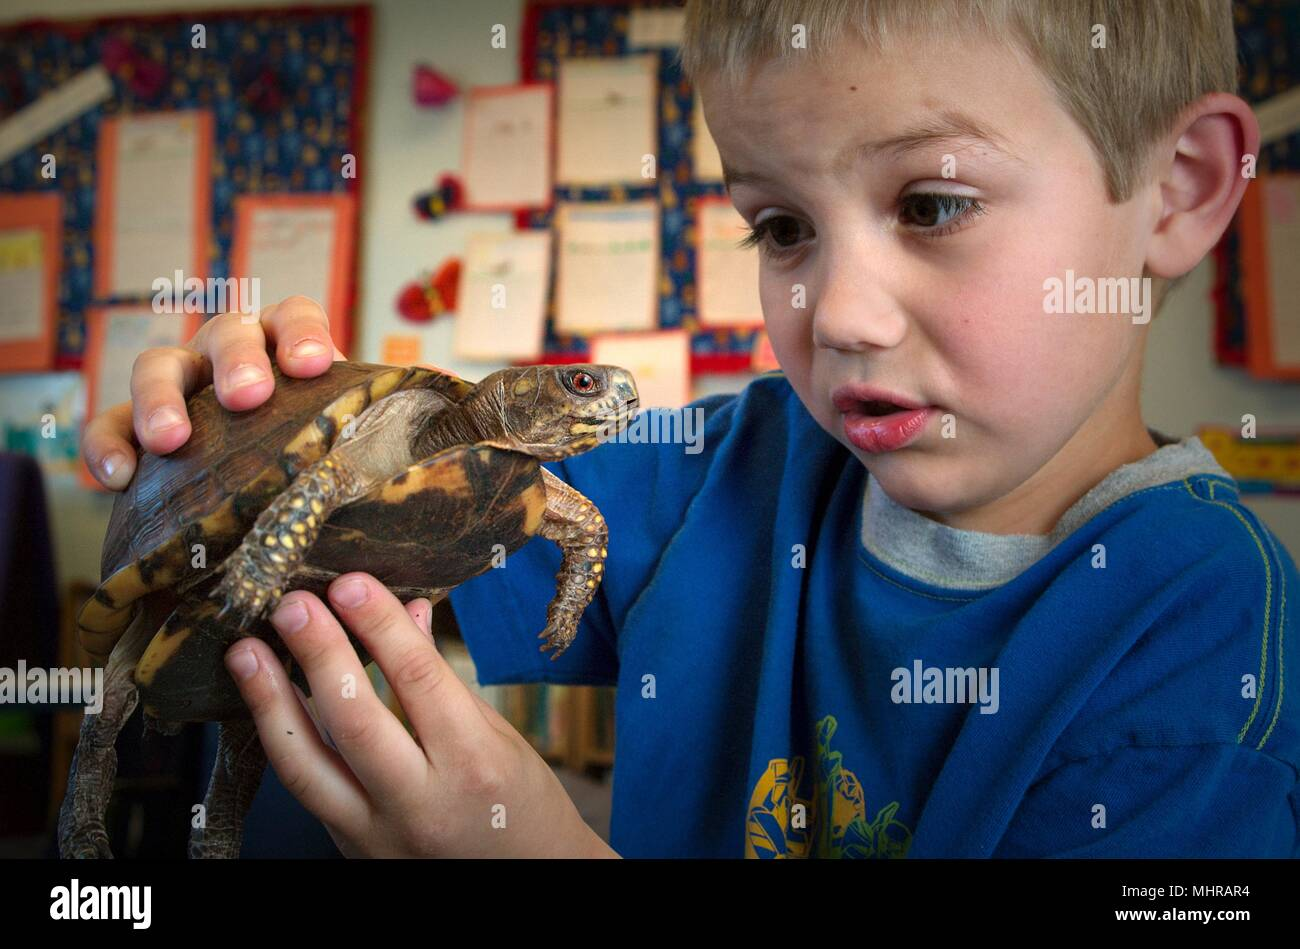 Young boy playing with a box turtle, a potential carrier of the Salmonella virus, 2005. Image courtesy Centers for Disease Control (CDC) / James Gathany. () - Stock Image